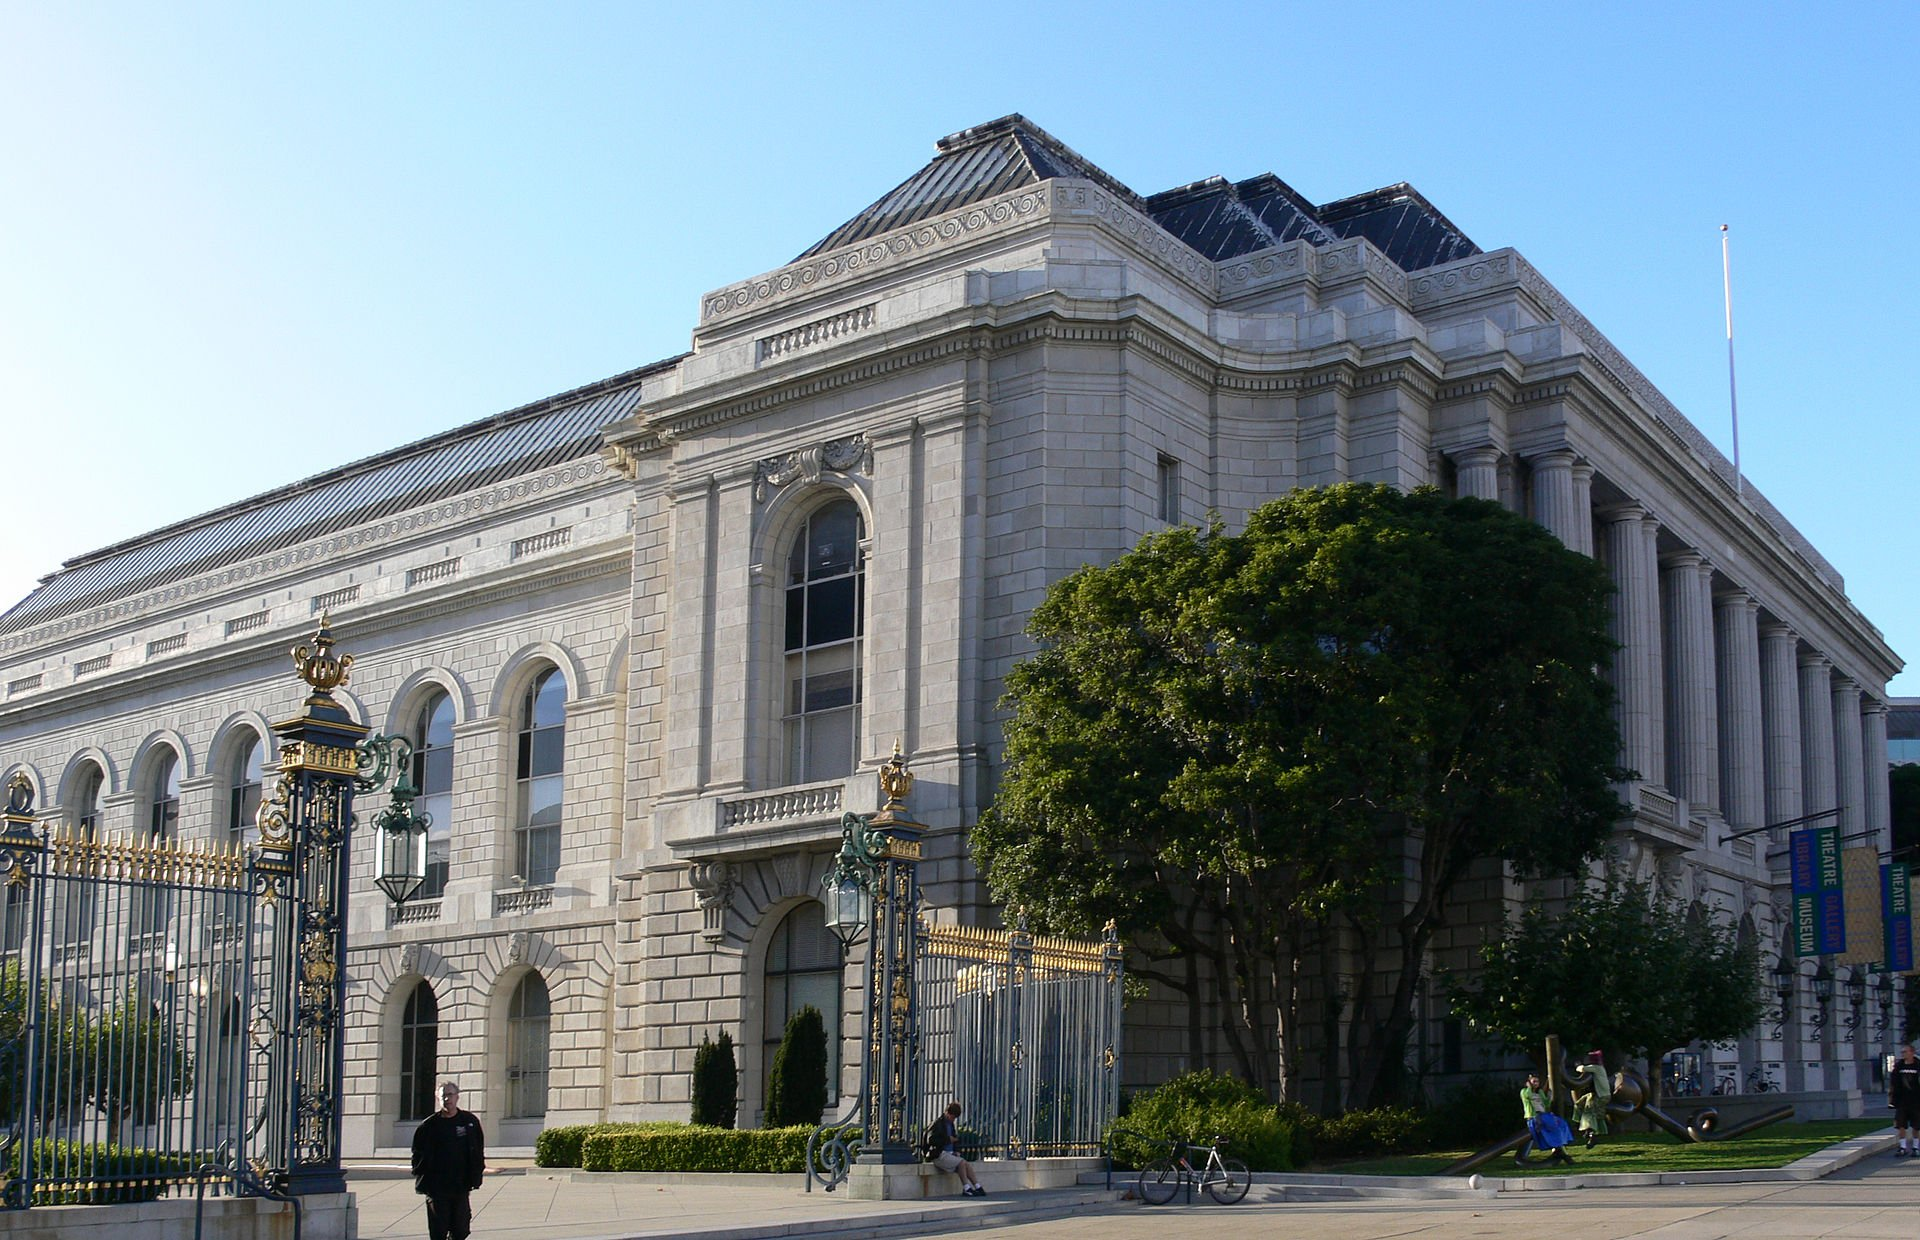 The War Memorial Veterans Building was built in 1932 and features the Herbst Theater, the Green Room (a performance and event hall), and one of the three galleries of the San Francisco Arts Commission.